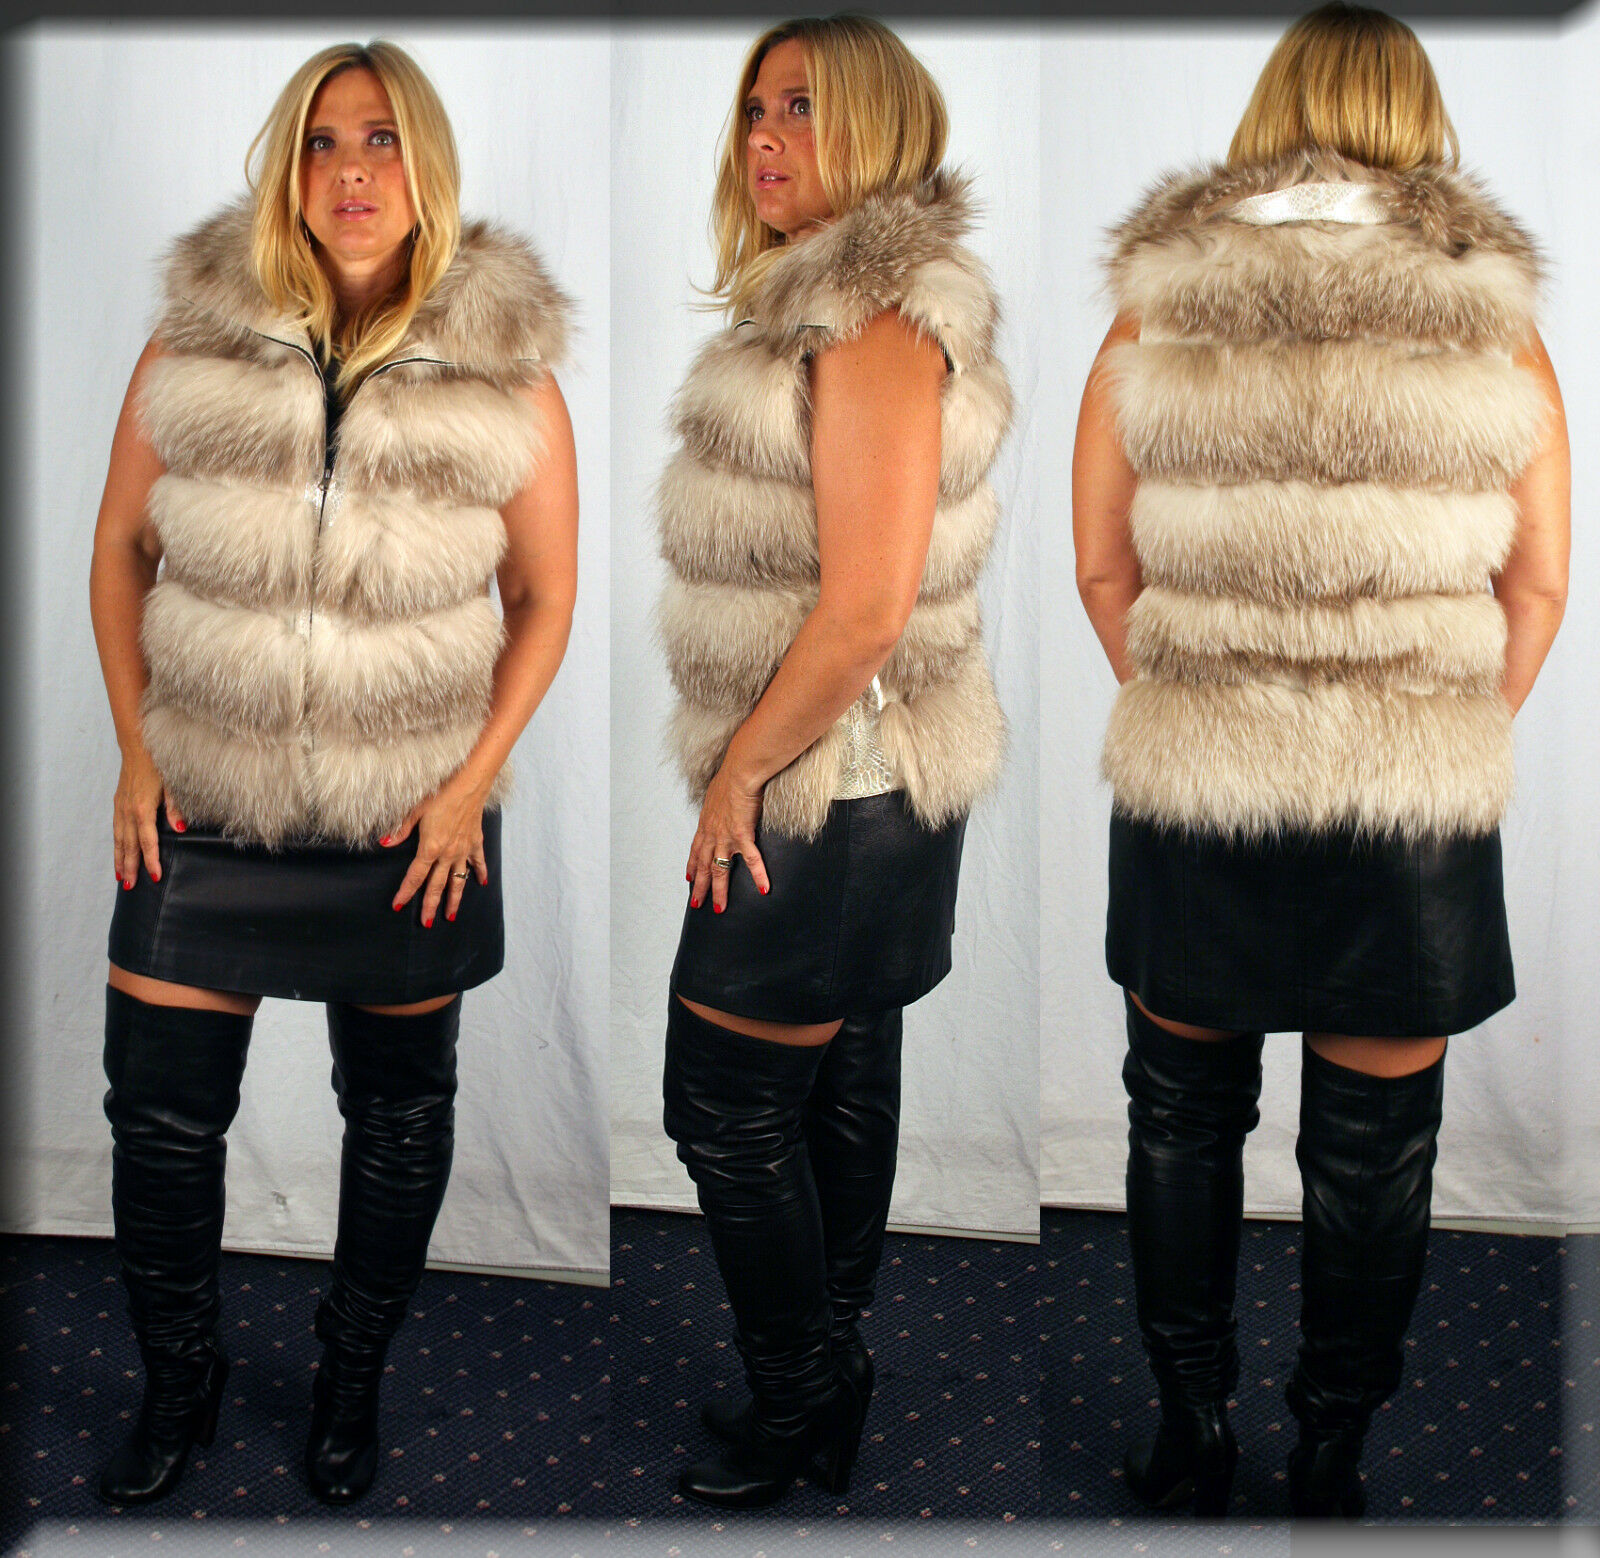 New Fawn Fox Fur Vest Size Small 4 6 S Efurs4less